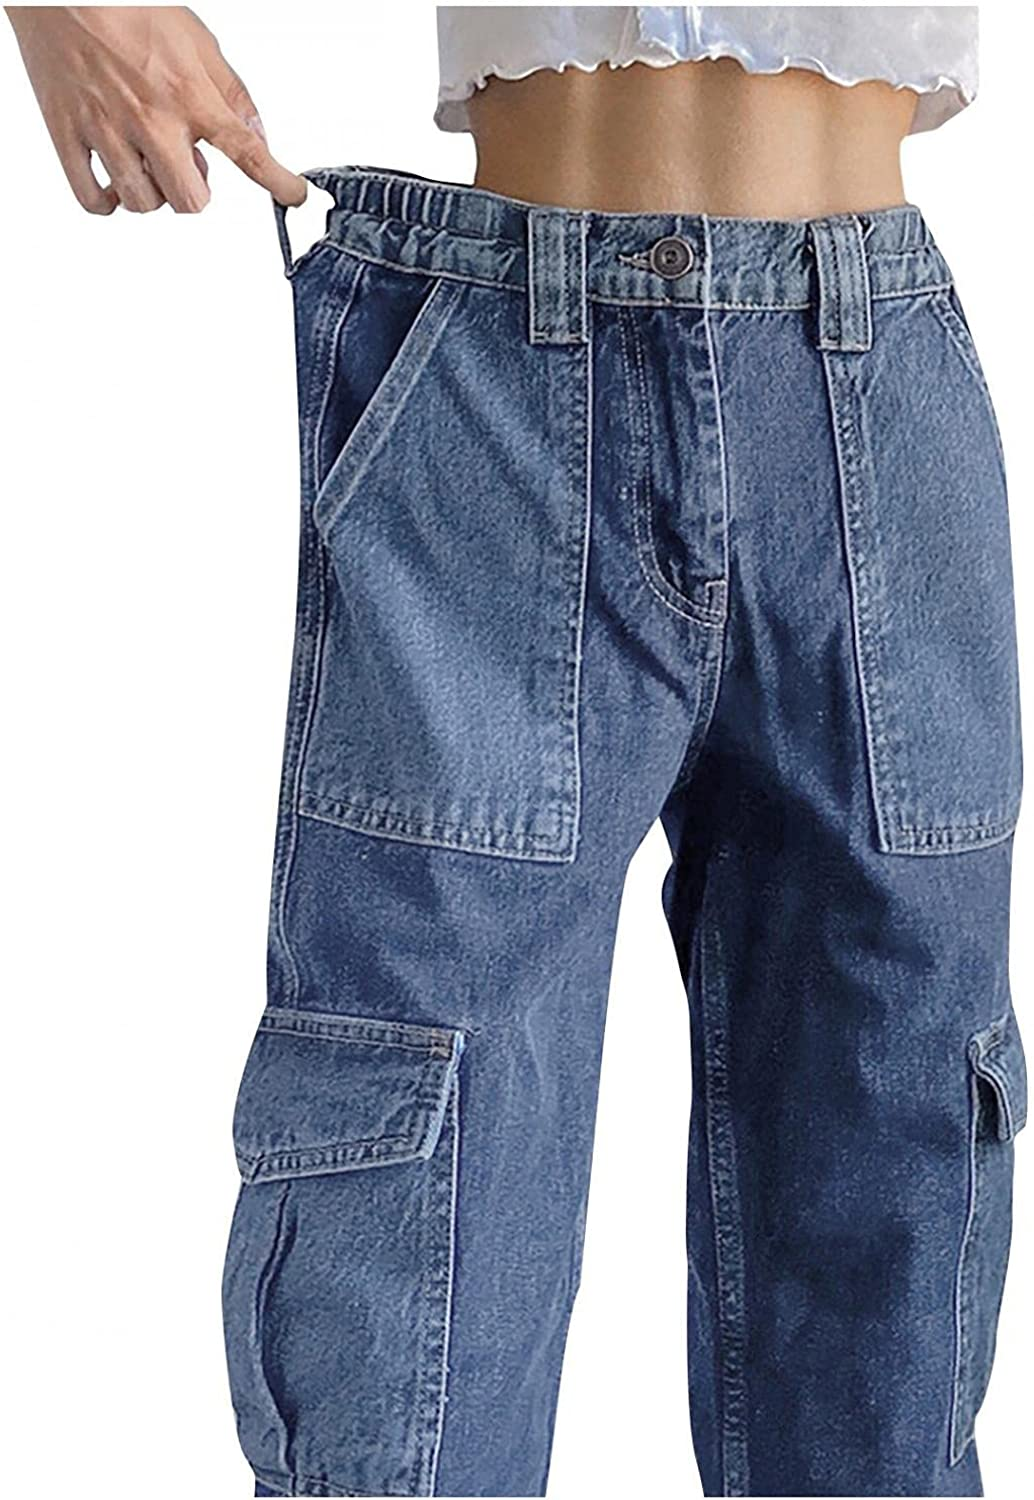 Dunacifa High Waisted Jeans for Women Distressed Baggy Boyfriends Jeans Butt Lifting Denim Pants with Pocket Streetwears